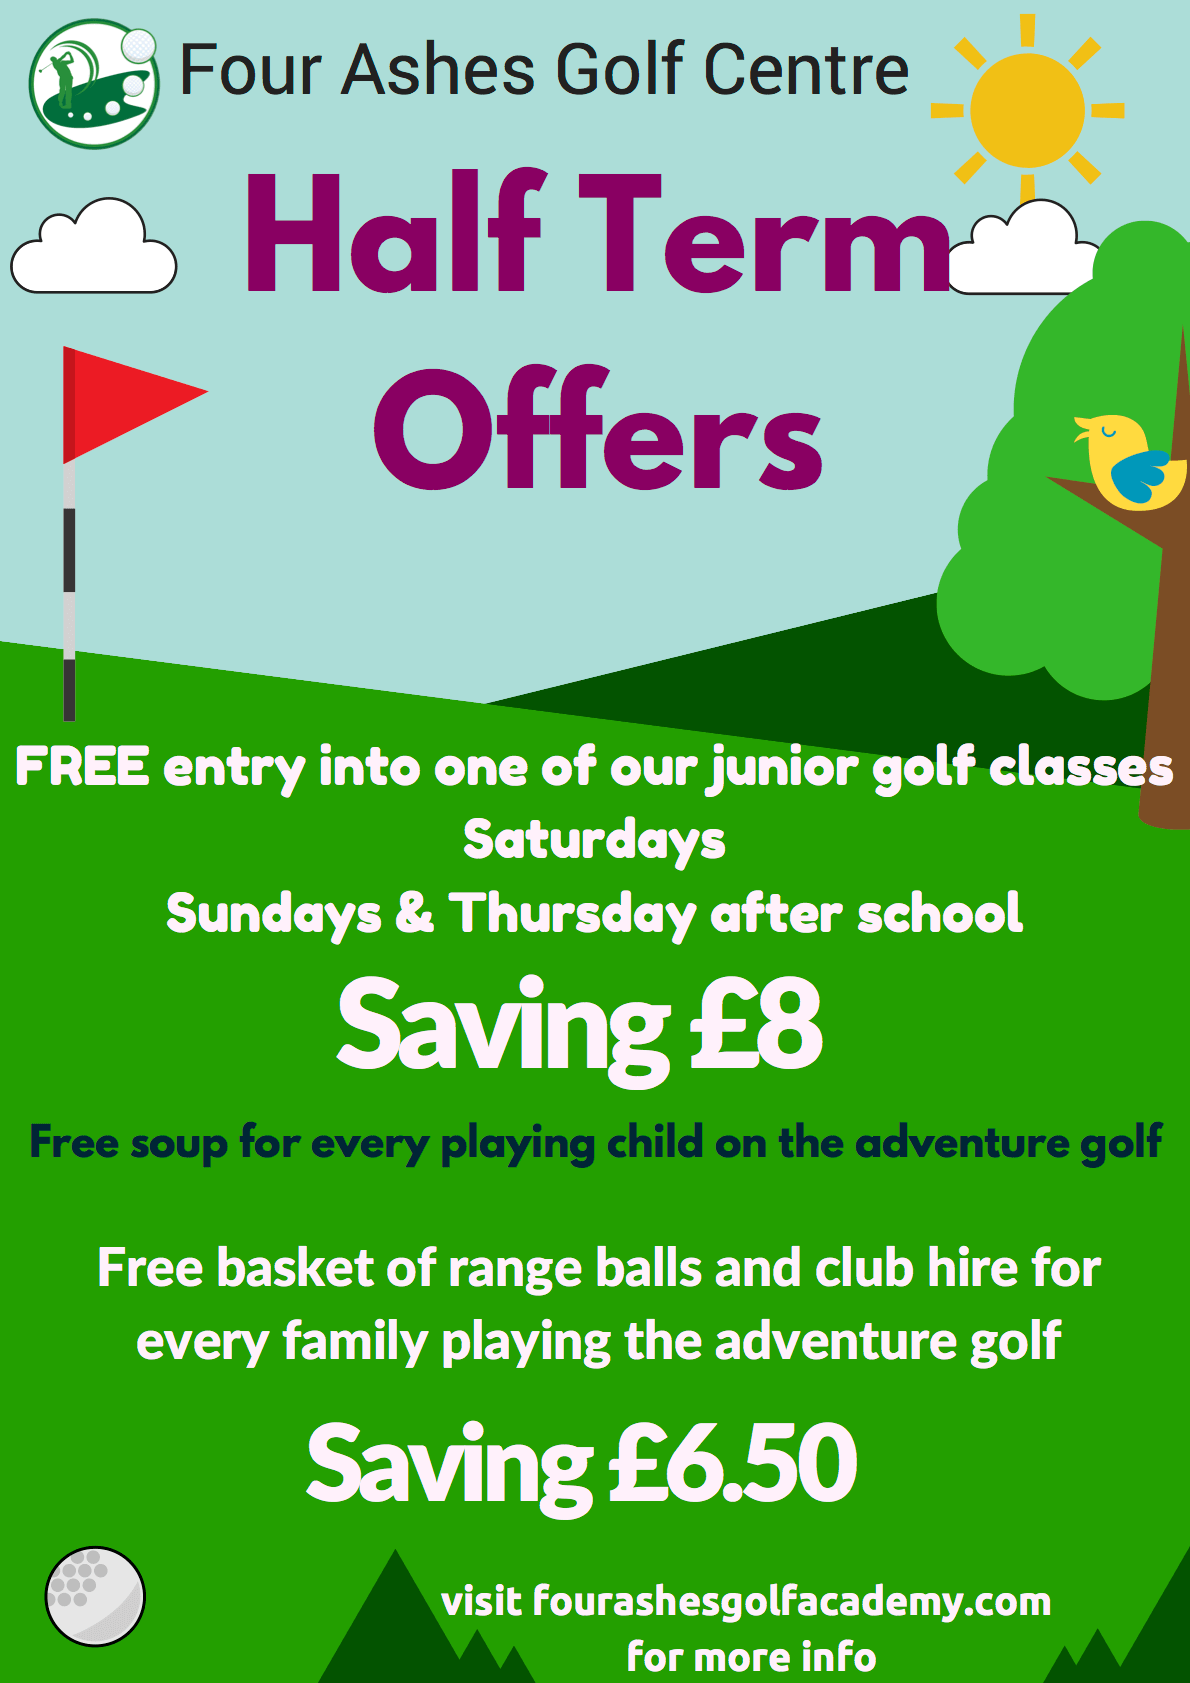 Four Ashes Golf Academy Half term Offers